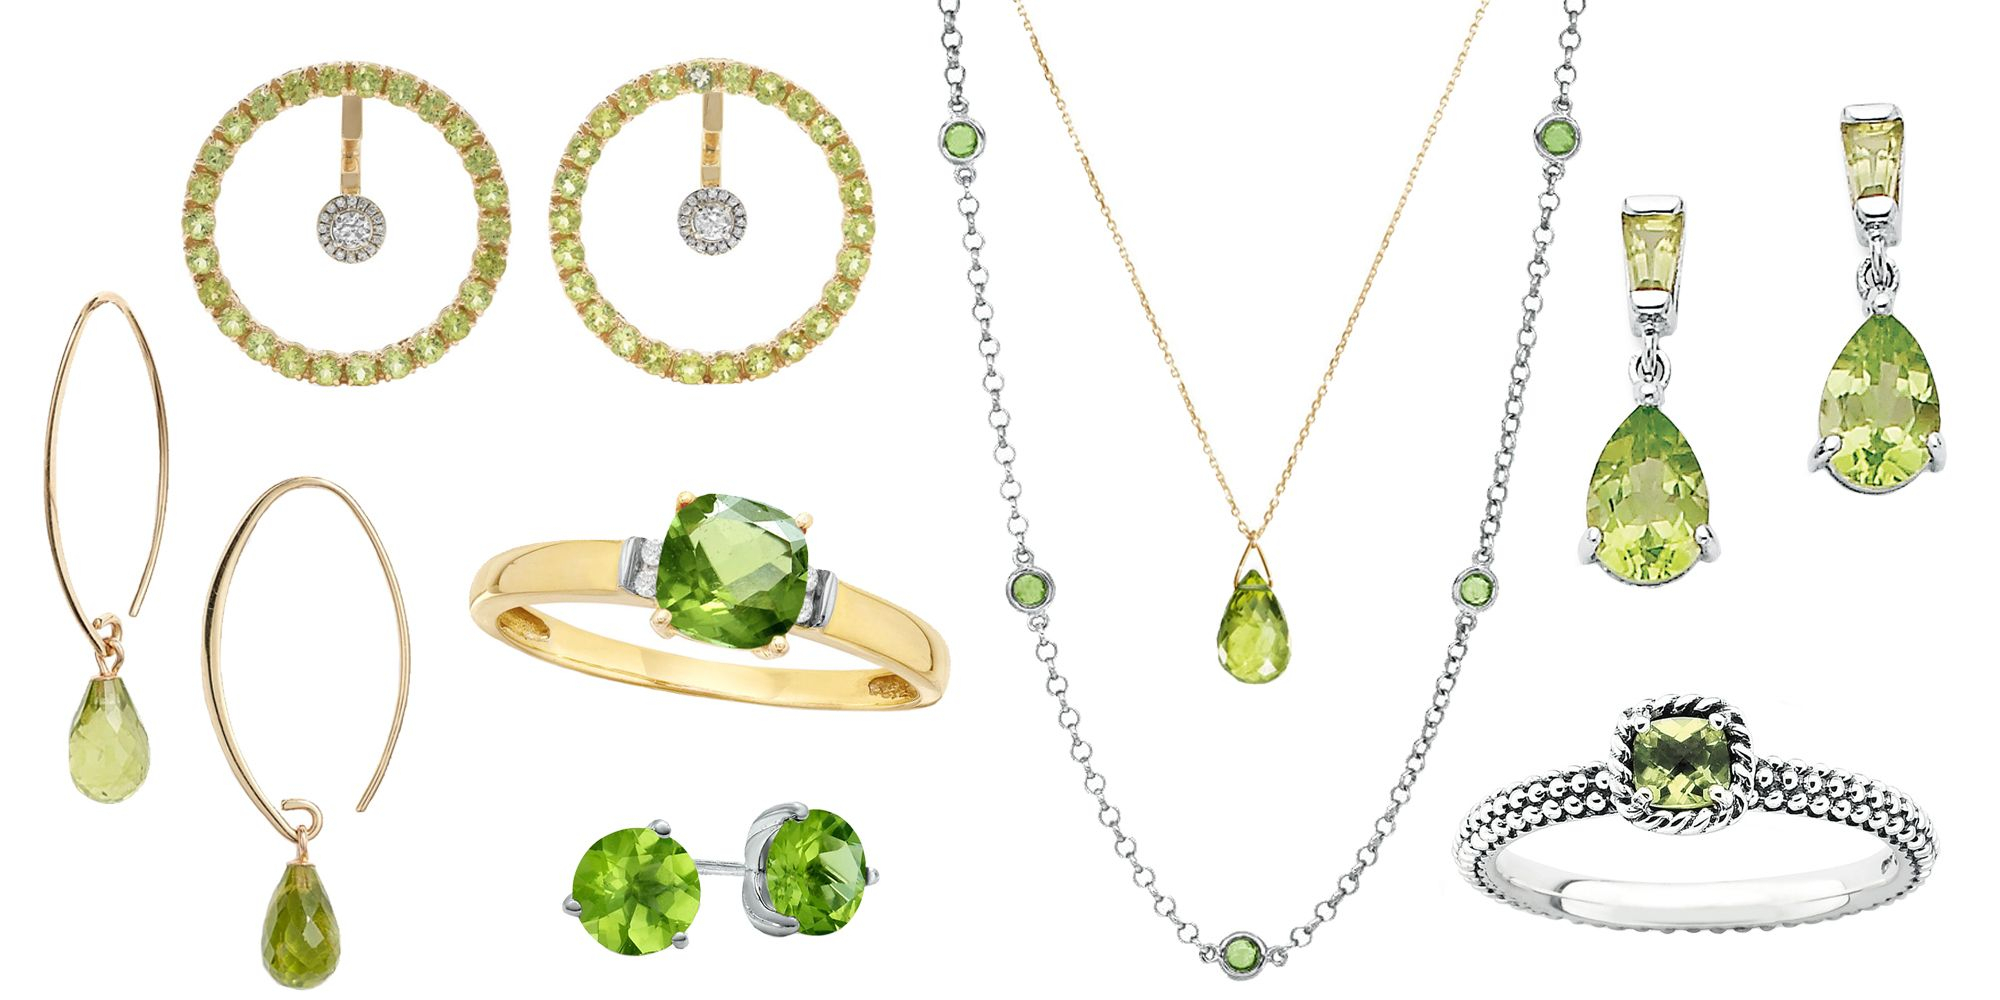 The Best Birthstone Jewelry To Gift For August Birthdays In Recent Royal Green Crystal May Droplet Pendant Necklaces (Gallery 24 of 25)